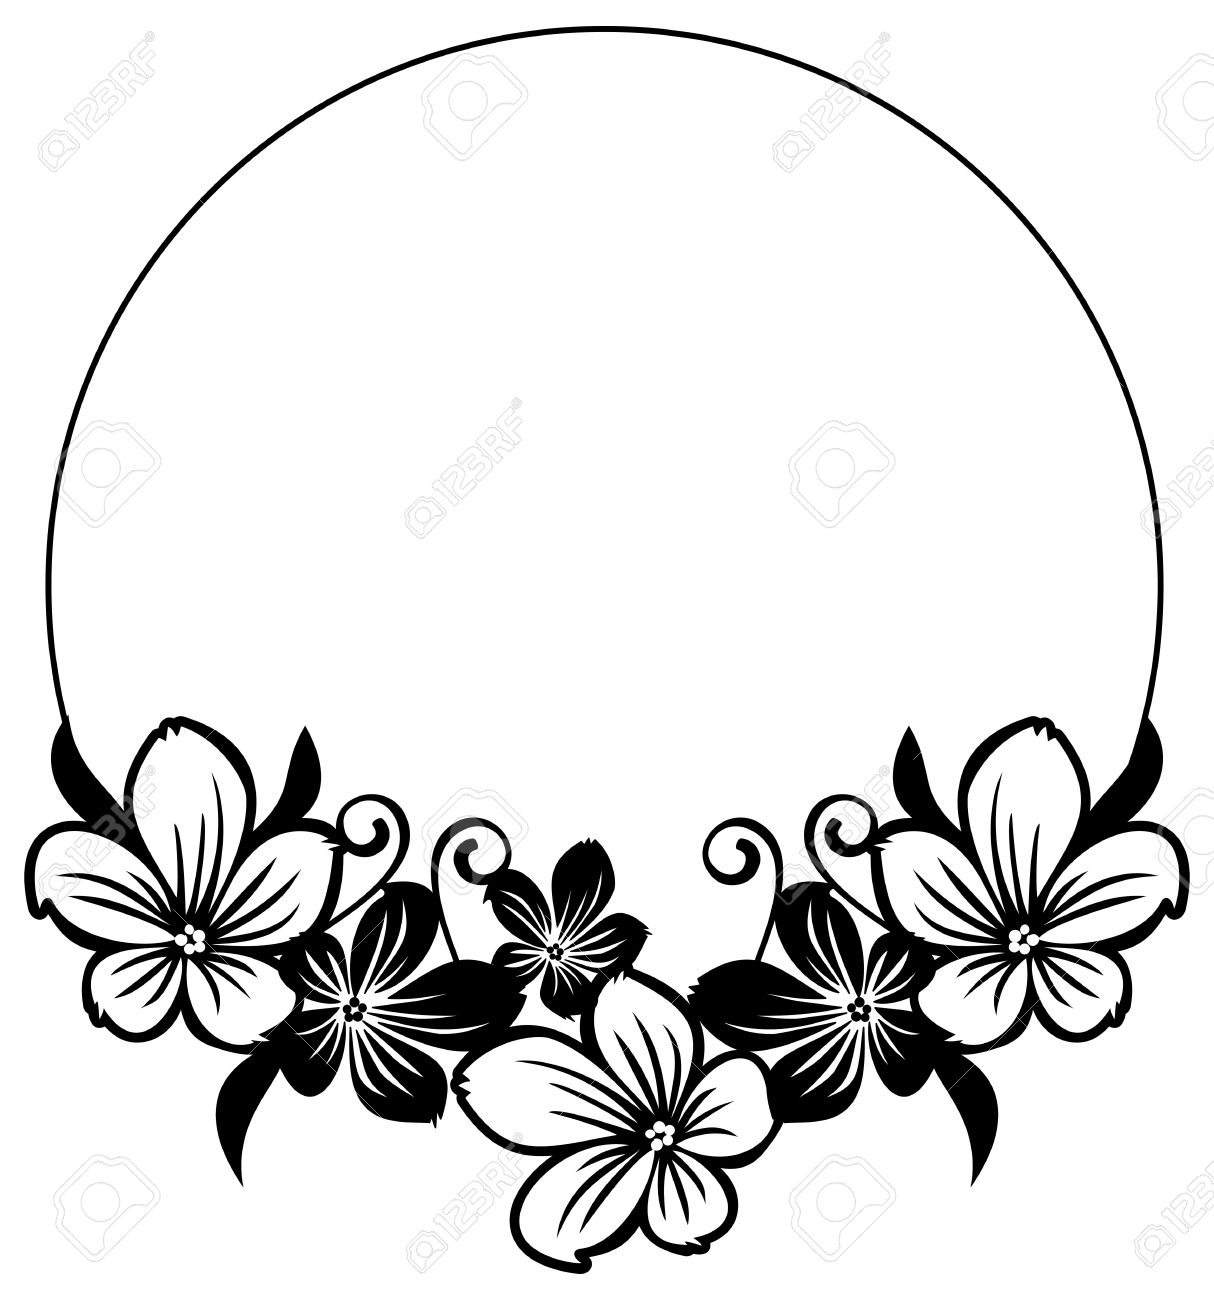 black and white round frame with abstract flowers silhouettes rh 123rf com free black and white flower clipart images